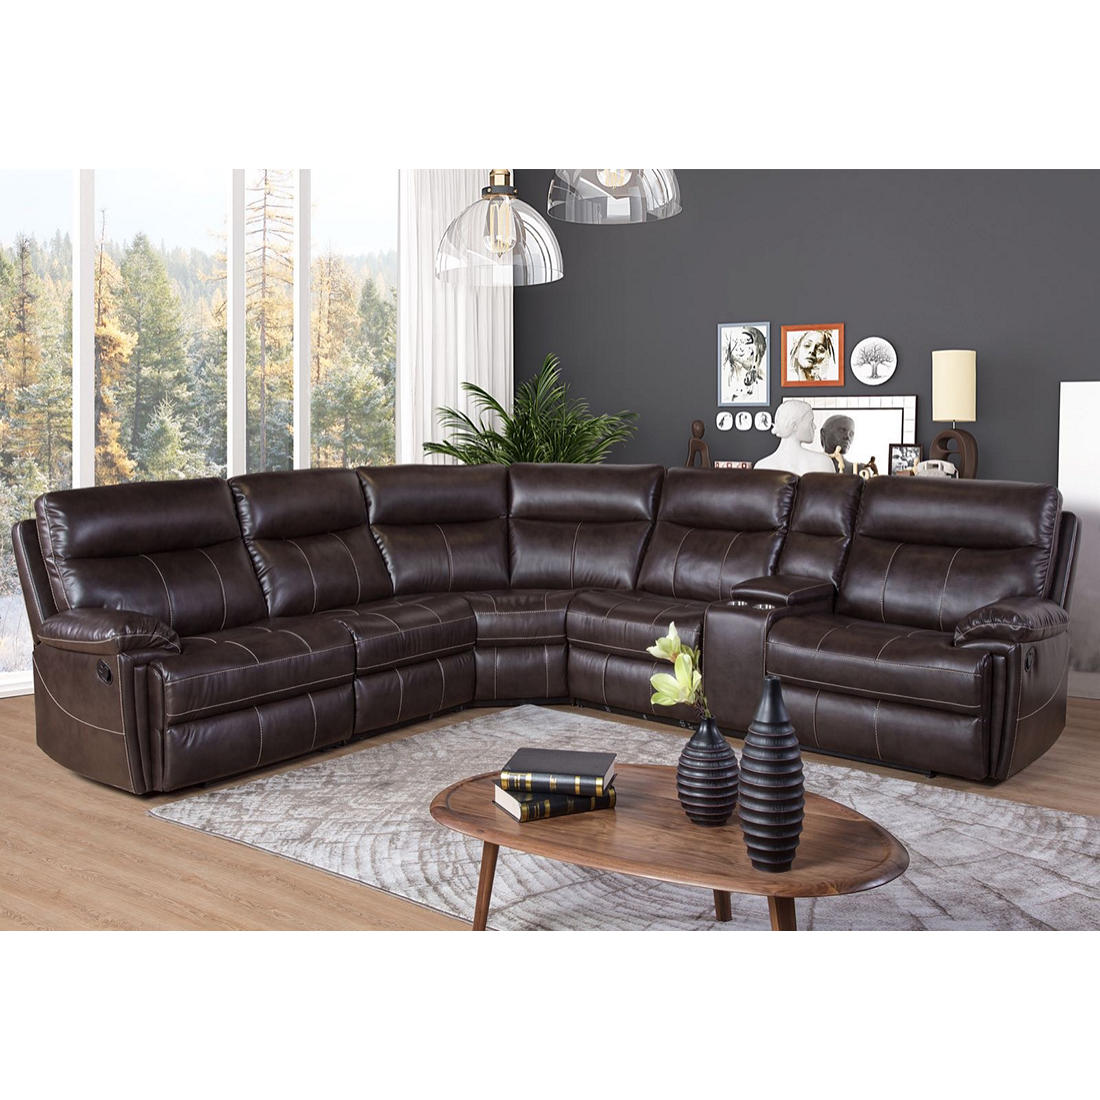 Awe Inspiring Brandon 6 Pc Reclining Sectional With Free White Glove Delivery Bralicious Painted Fabric Chair Ideas Braliciousco